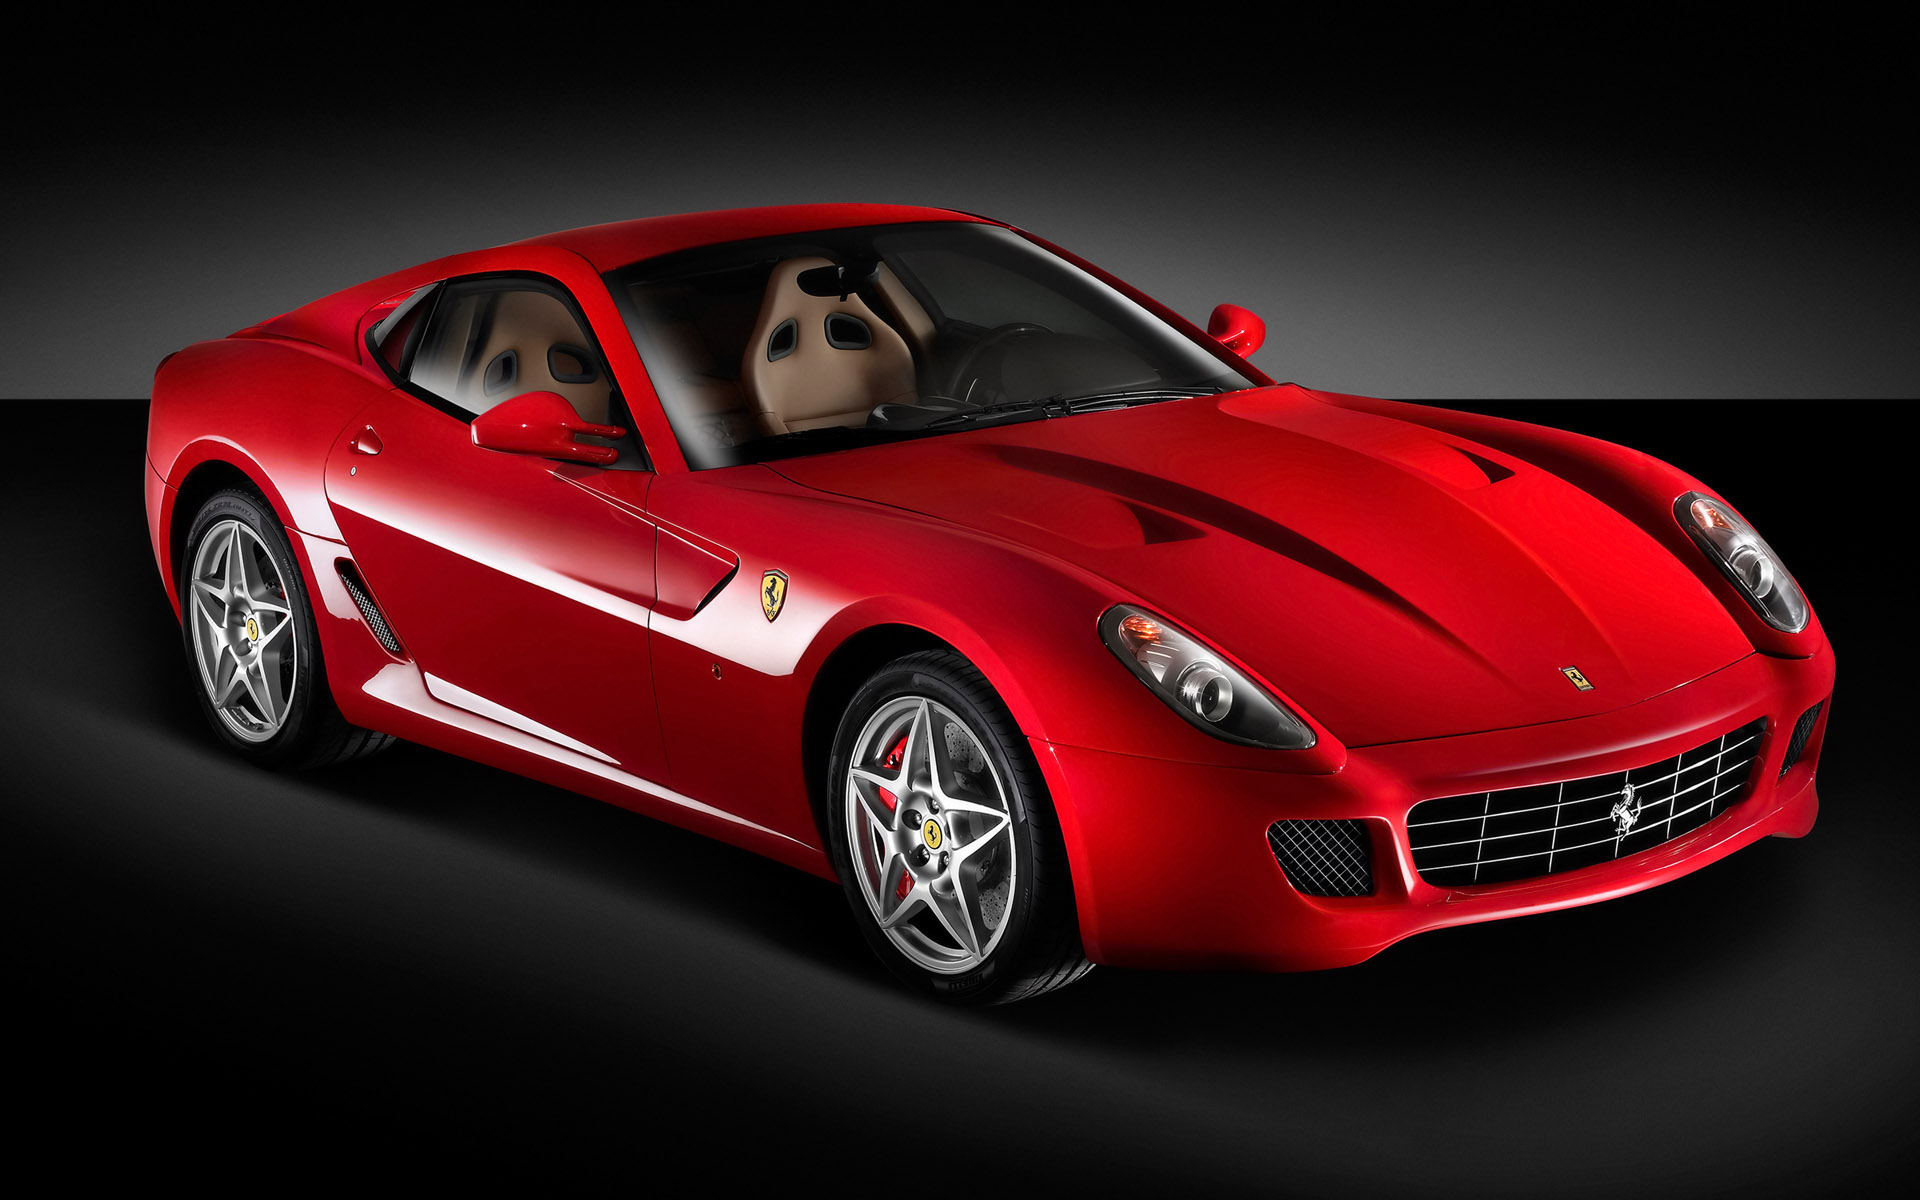 Red Ferrari Car In Stop, Must Be Fast In Speed, On A Flat Black Road Wallpaper